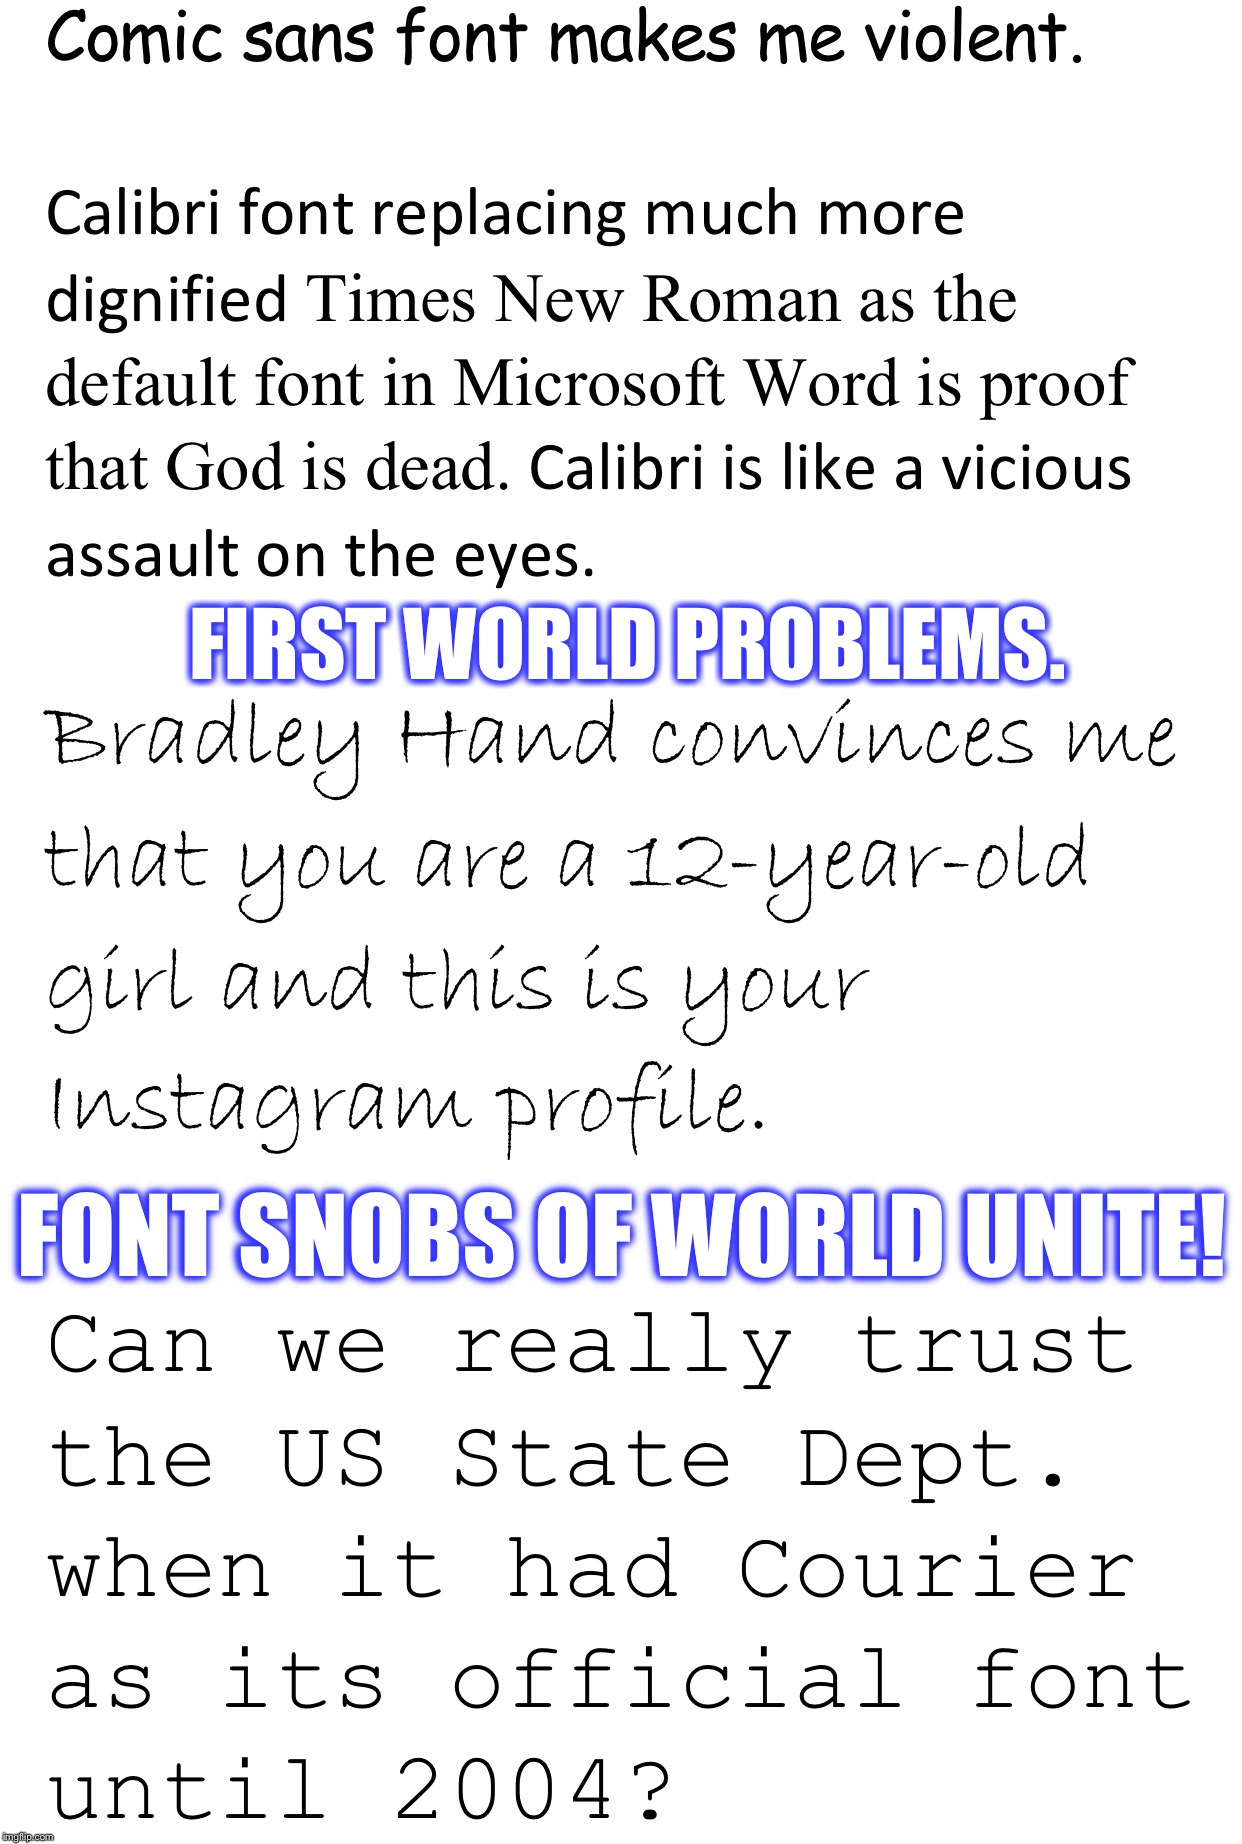 PS I Also Hate Meme Font | FIRST WORLD PROBLEMS. FONT SNOBS OF WORLD UNITE! | image tagged in font,funny,funny memes,snobby,microsoft,graphic design problems | made w/ Imgflip meme maker